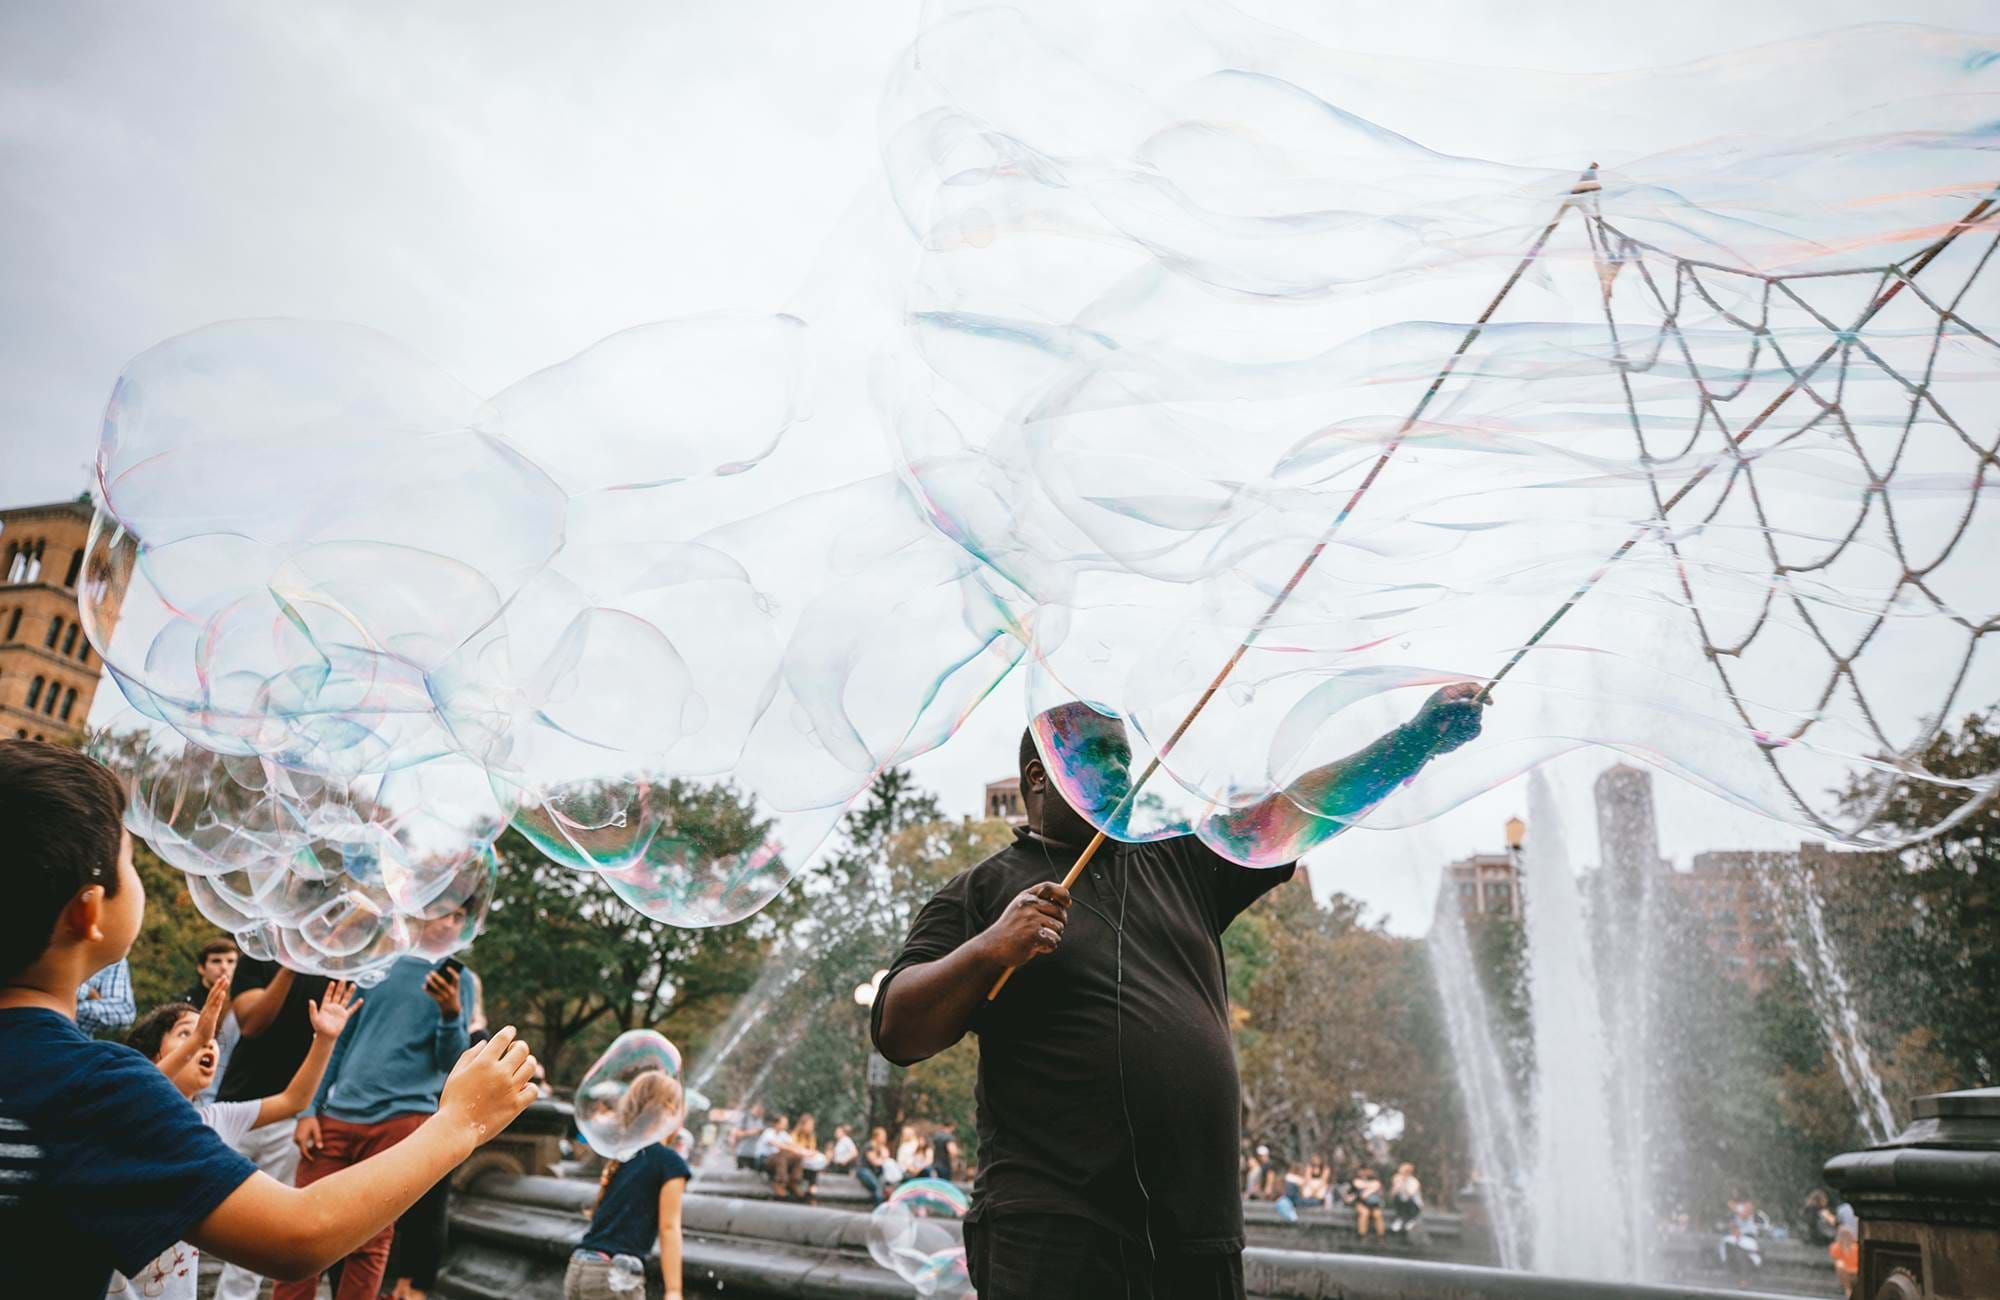 usa-new-york-manhattan-soap-bubbles-street-performer